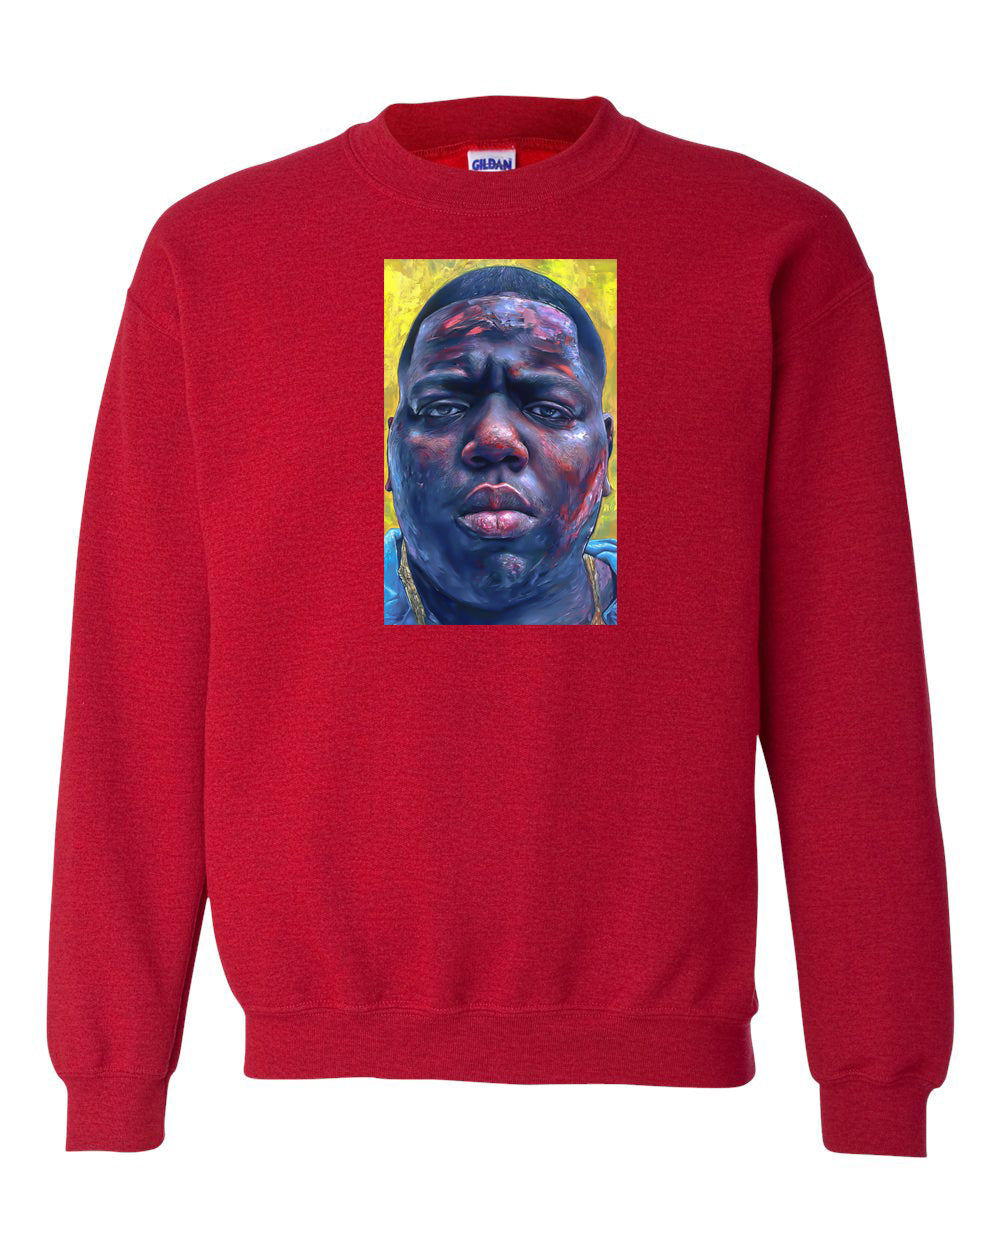 Biggie Crewneck - Red - TOPS, TSS CUSTOM GRPHX, SNEAKER STUDIO, GOLDEN GILT, DESIGN BY TSS